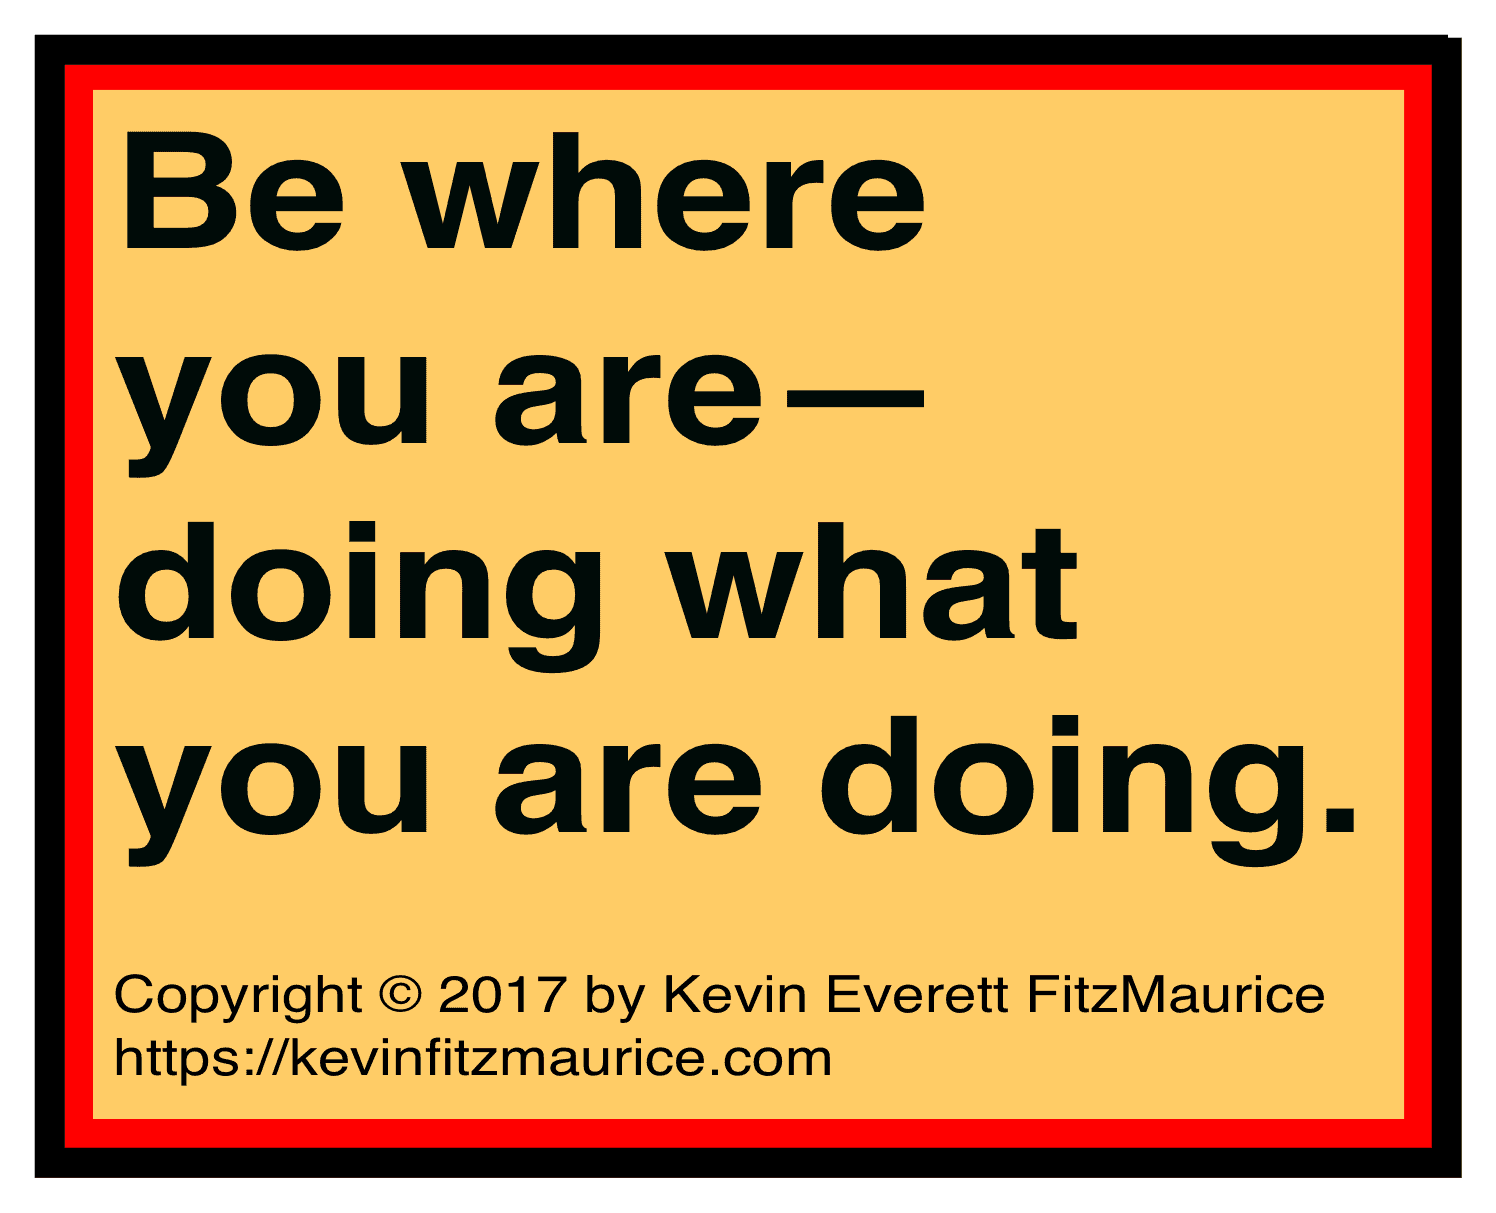 Be Where You Are Doing What You are Doing